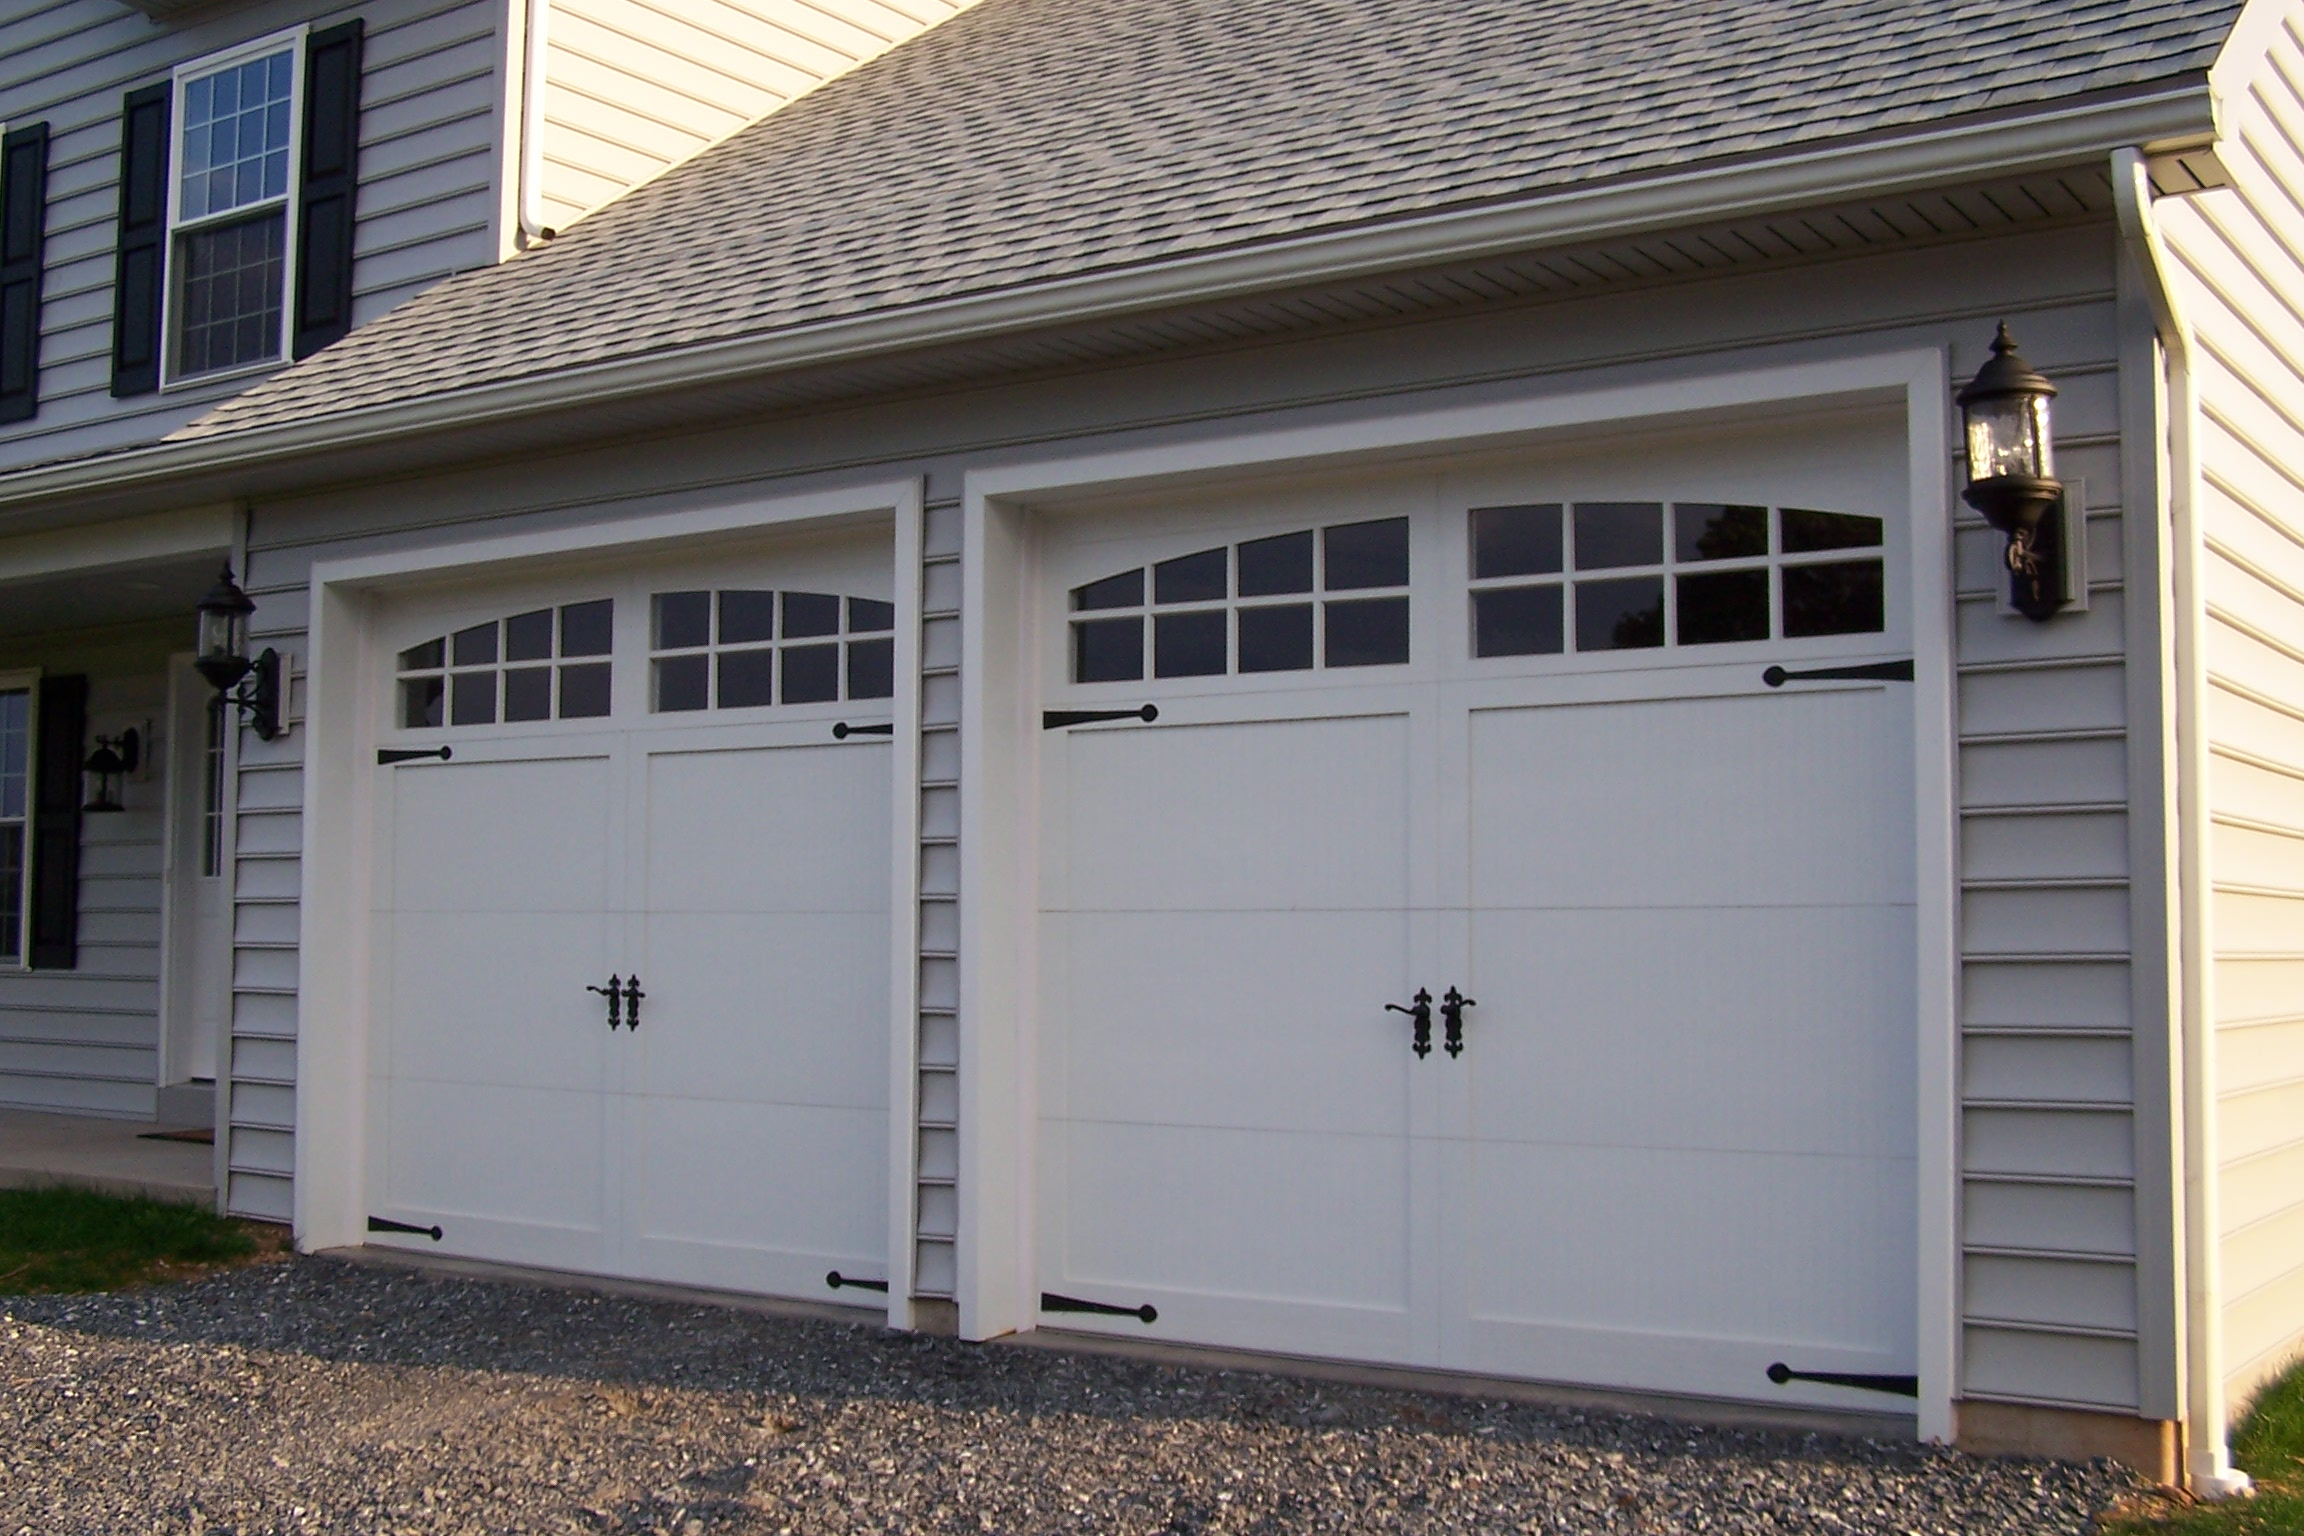 My Garage Door Is Really Old. Should I Replace It Or Repair It?